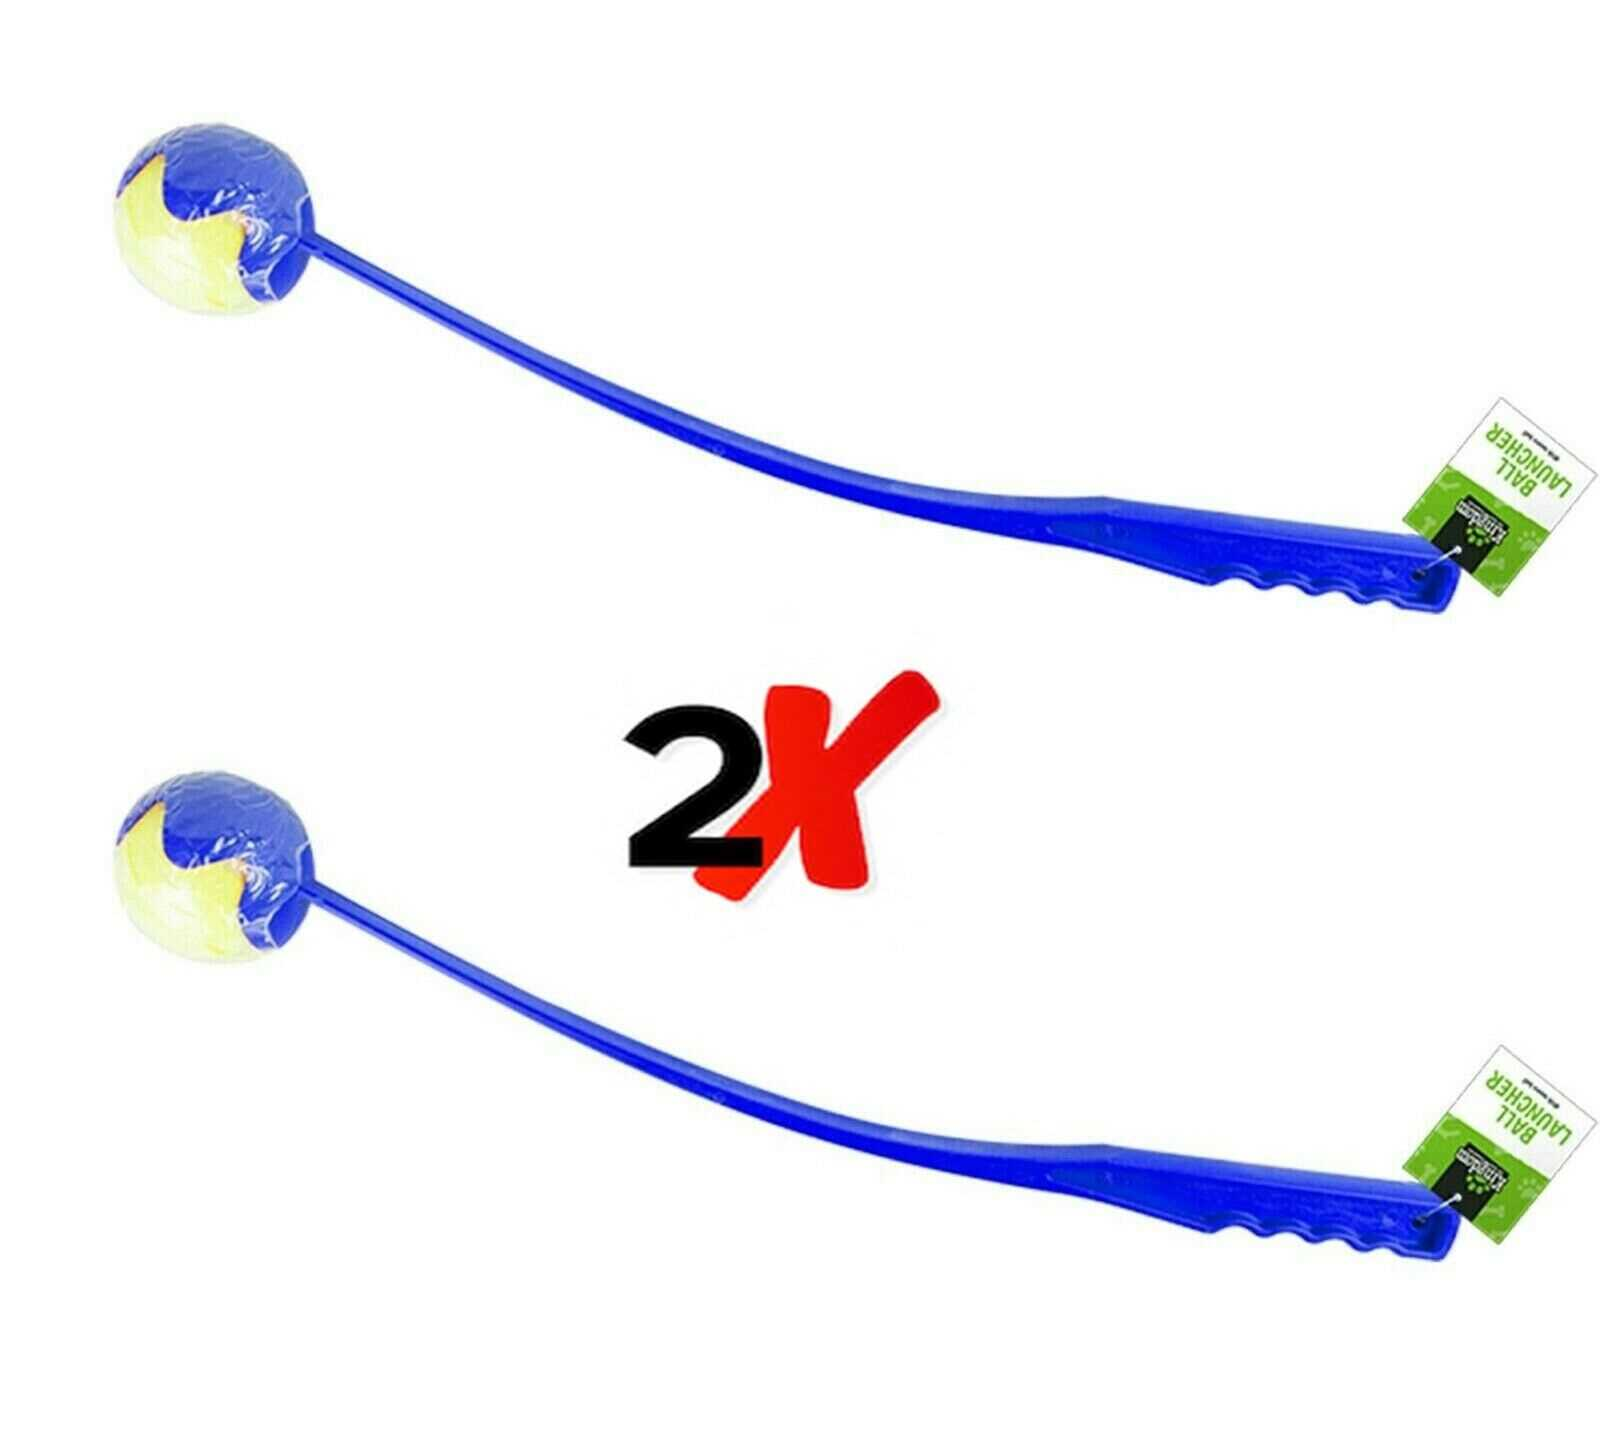 2 x Blue Ball Thrower Launcher Pet Dog Toy Fetch Tennis Game Chucker Exercise